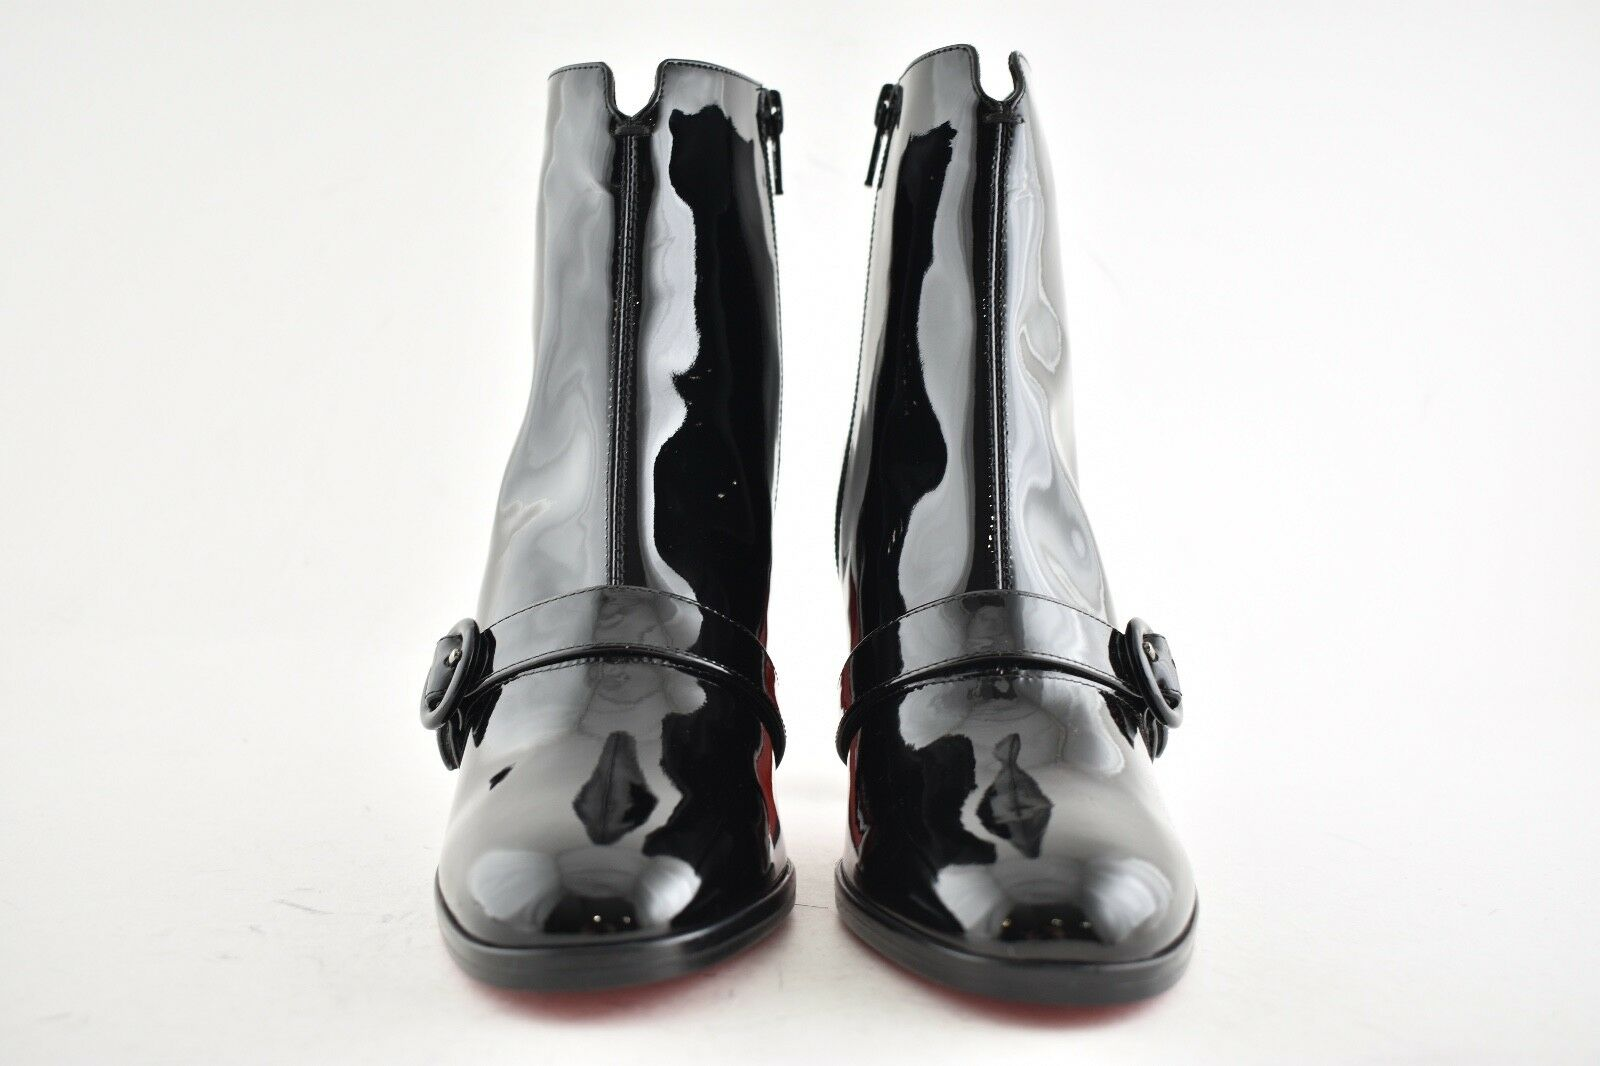 NB Christian Louboutin Louboutin Louboutin Horsy 85 Black Patent Leather Ankle Heel Boot Bootie 37.5 95f7db